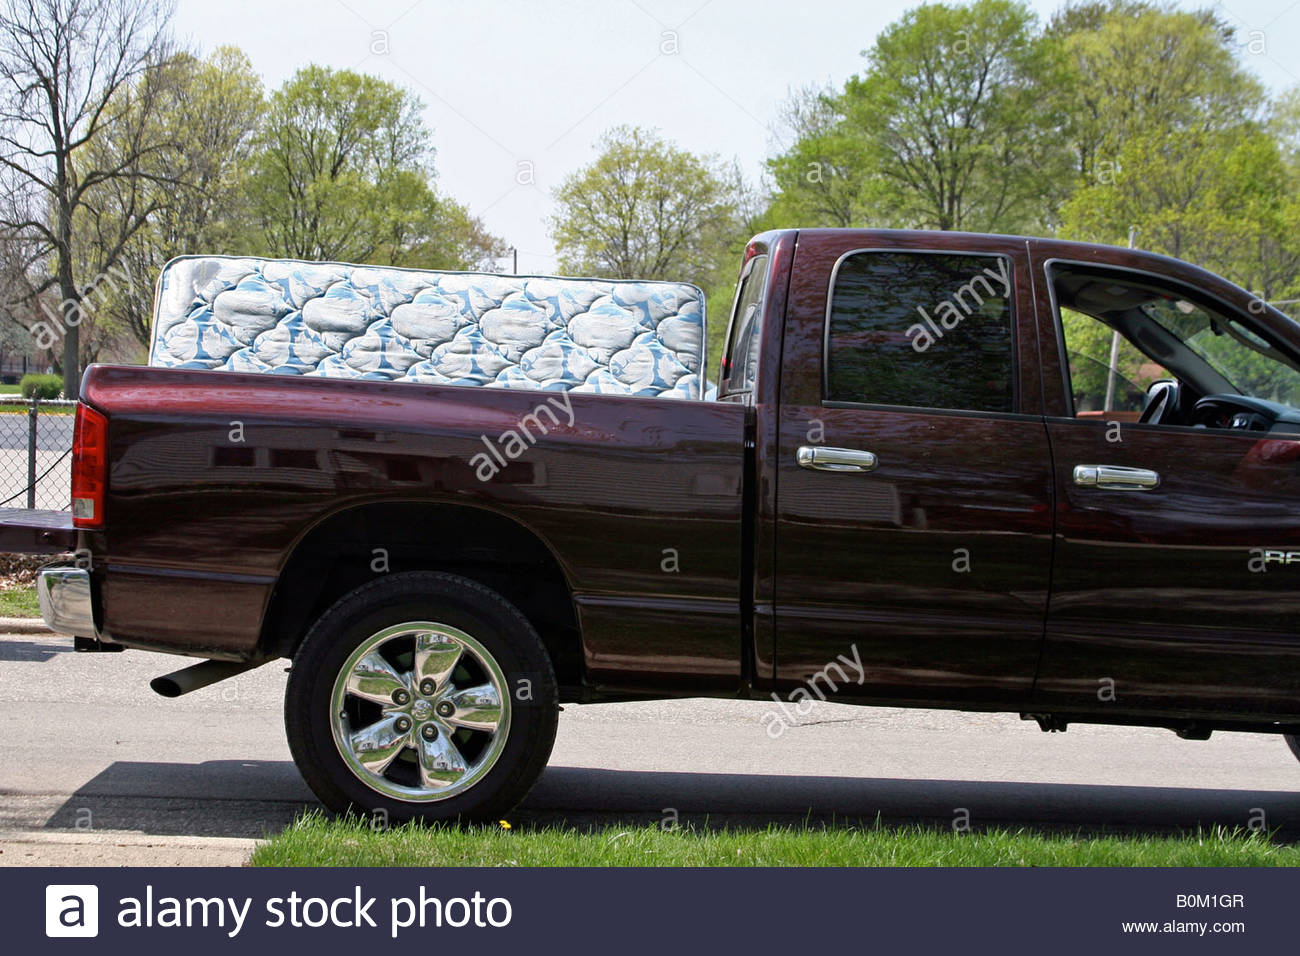 furniture moving out mattress moving carry truck pick up stock photo royalty free image. Black Bedroom Furniture Sets. Home Design Ideas